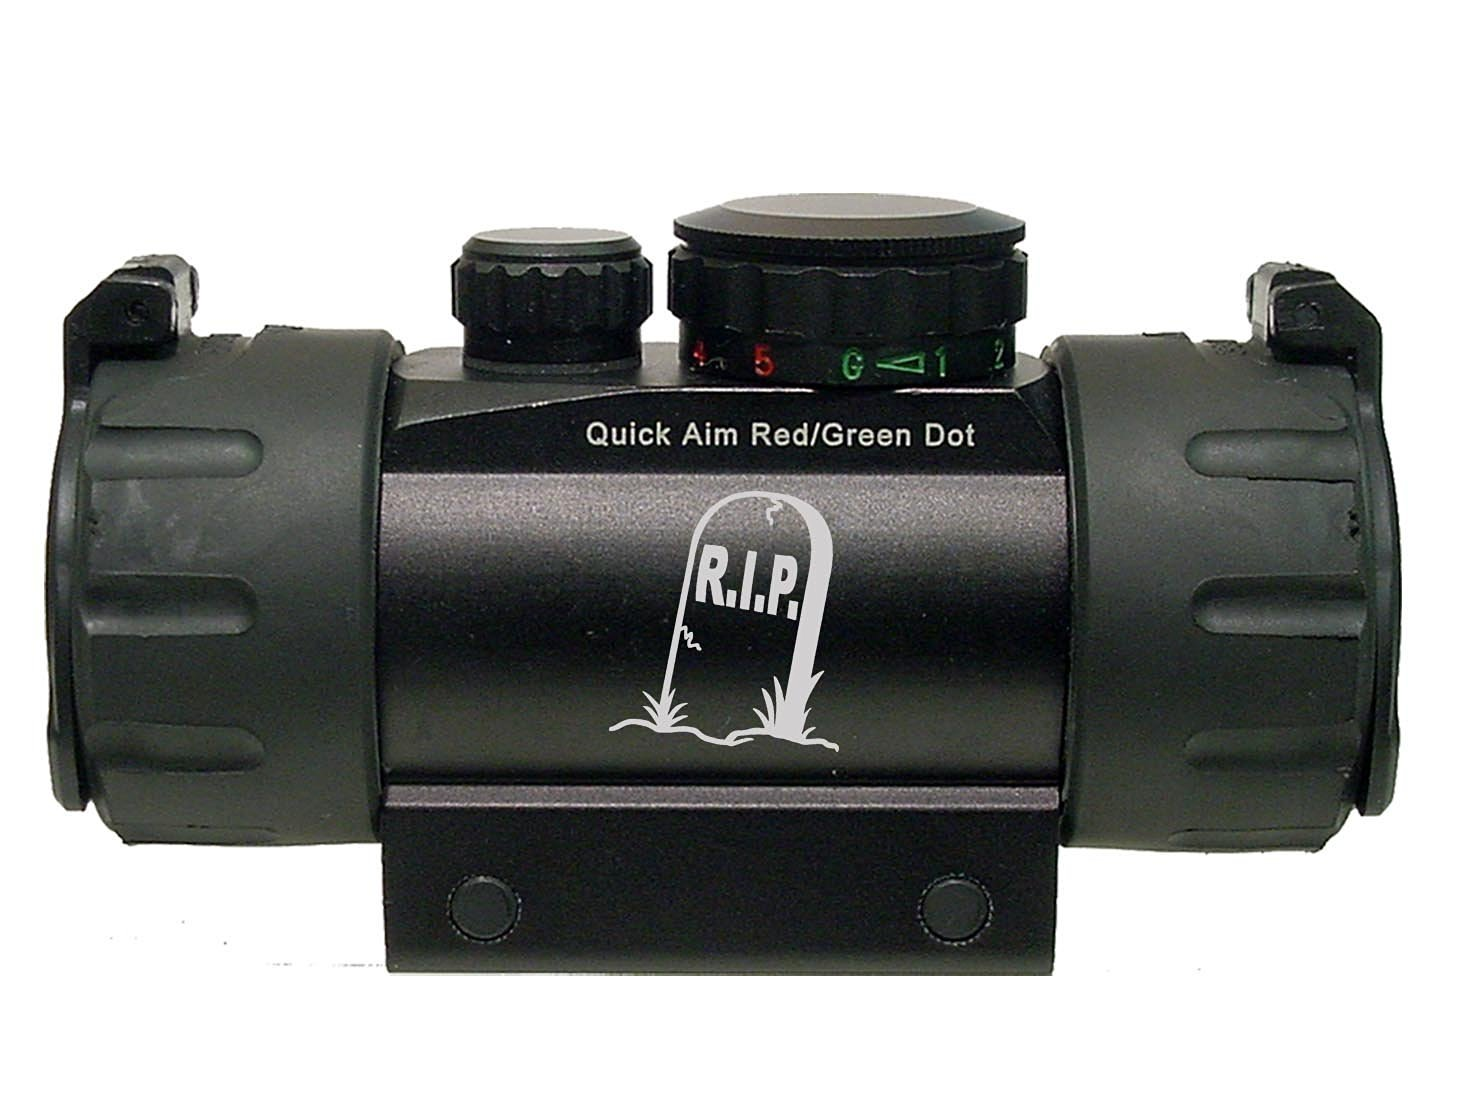 R.I.P. Tombstone Headstone Engraved Leapers UTG Red or Green DOT CQB Tactical sight by NDZ Performance